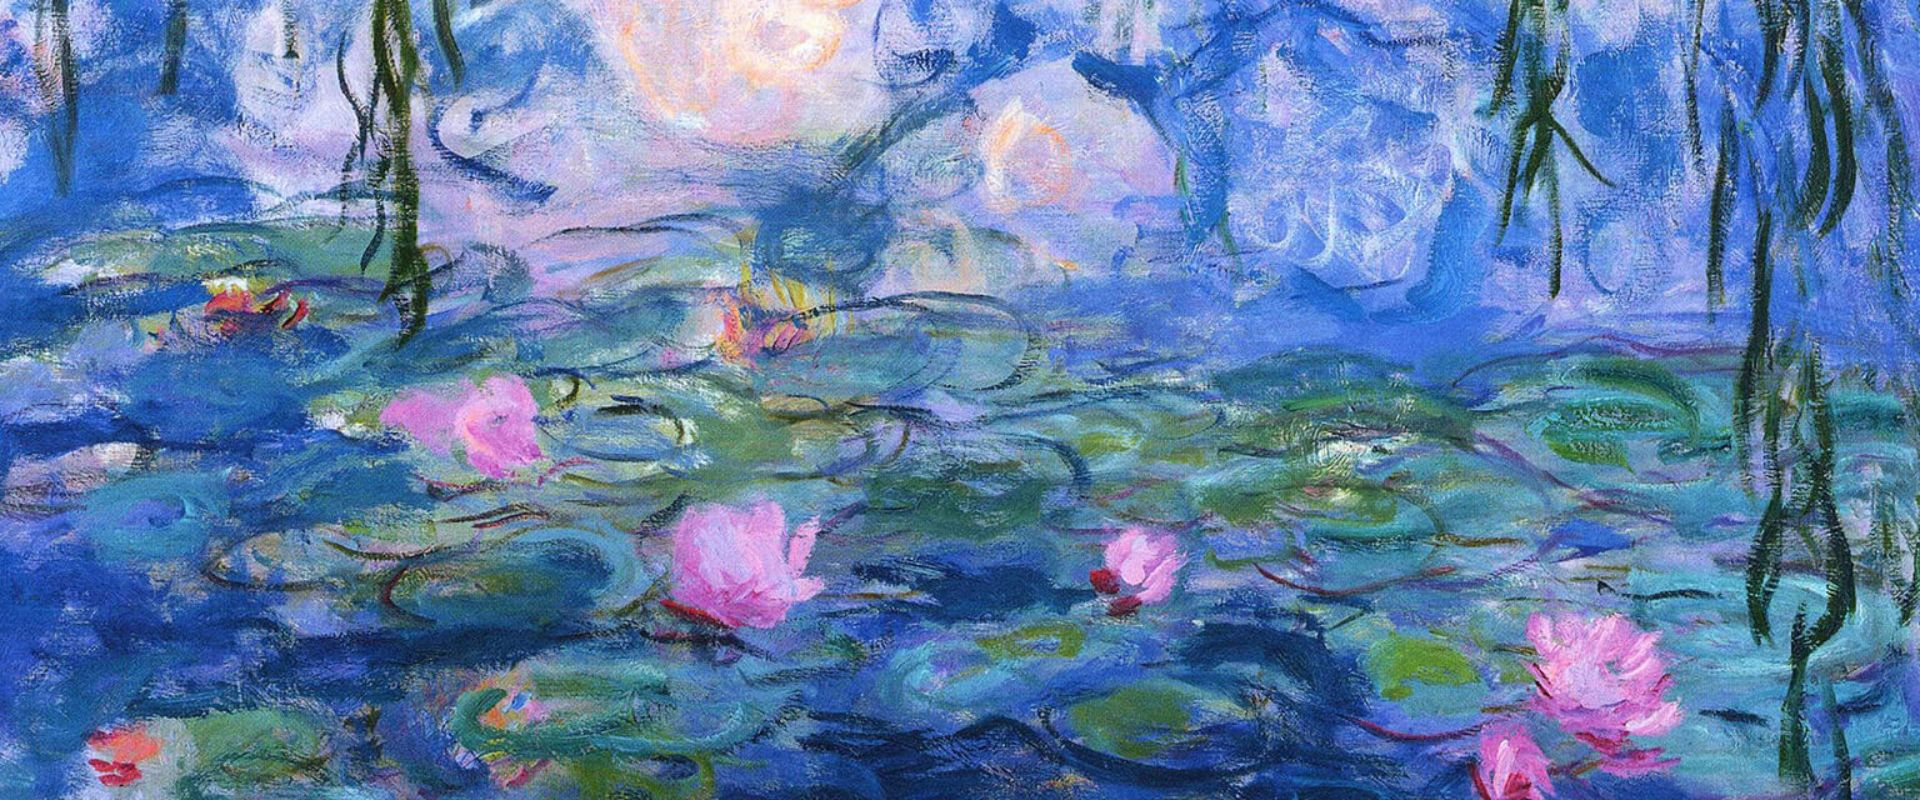 Claude monet paintings artworks collection buy posters for Monet paintings images